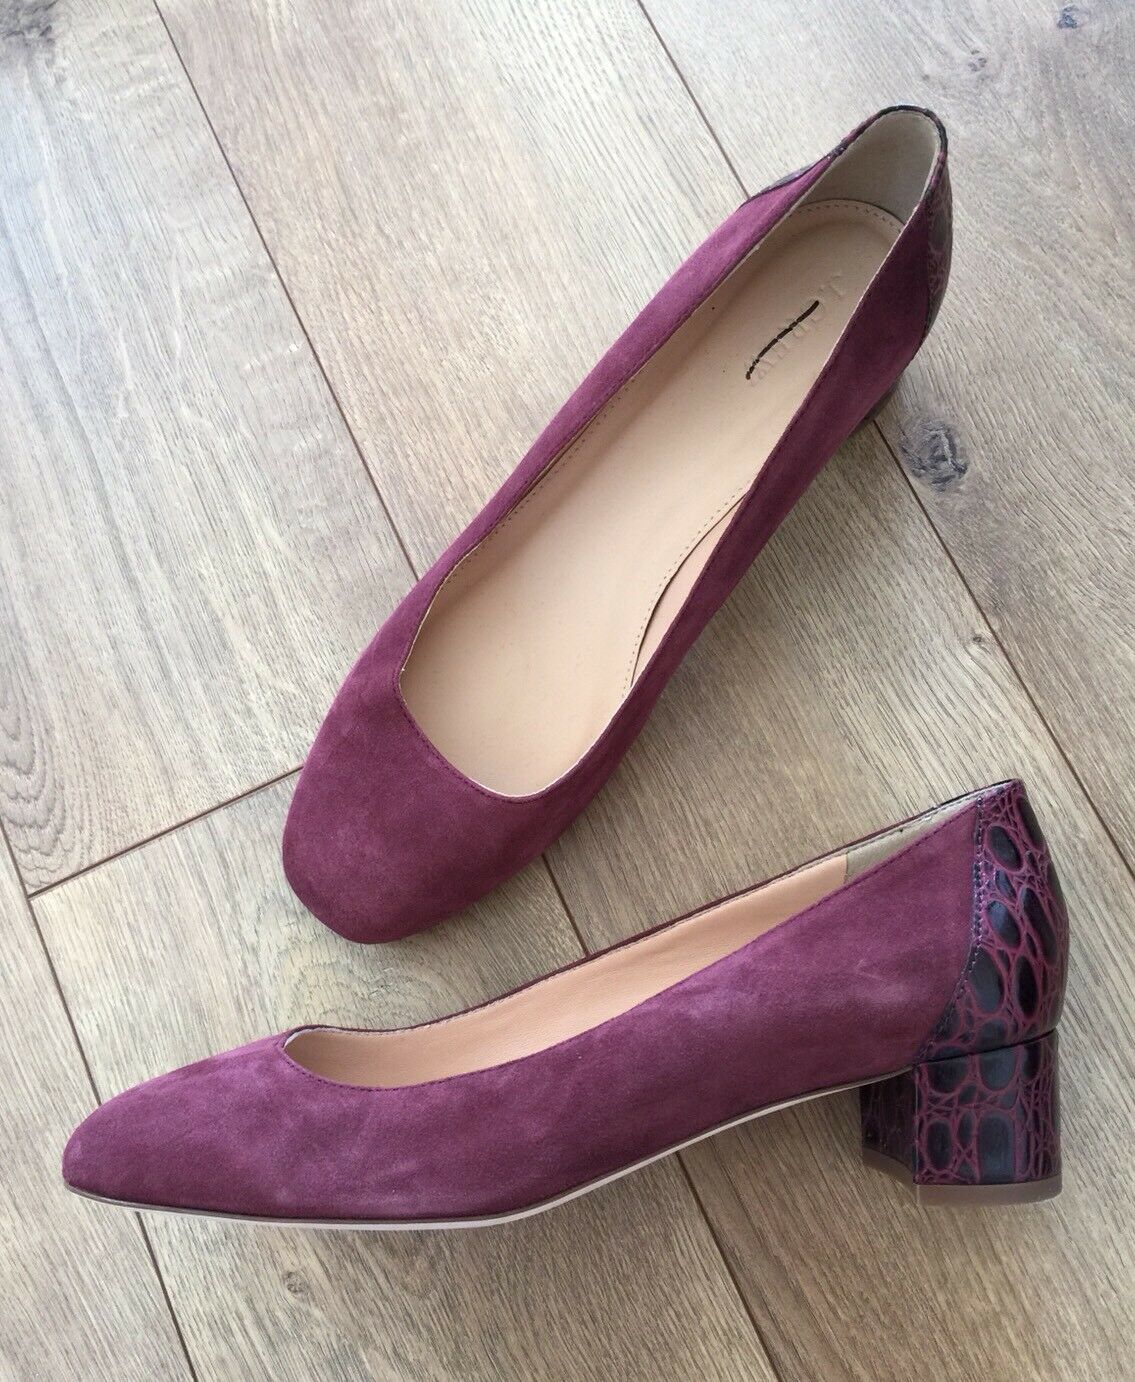 JCrew  198 Suede Pumps with Stamped Croc Heel 10 Vintage Cabernet Rosso Shoe G8170